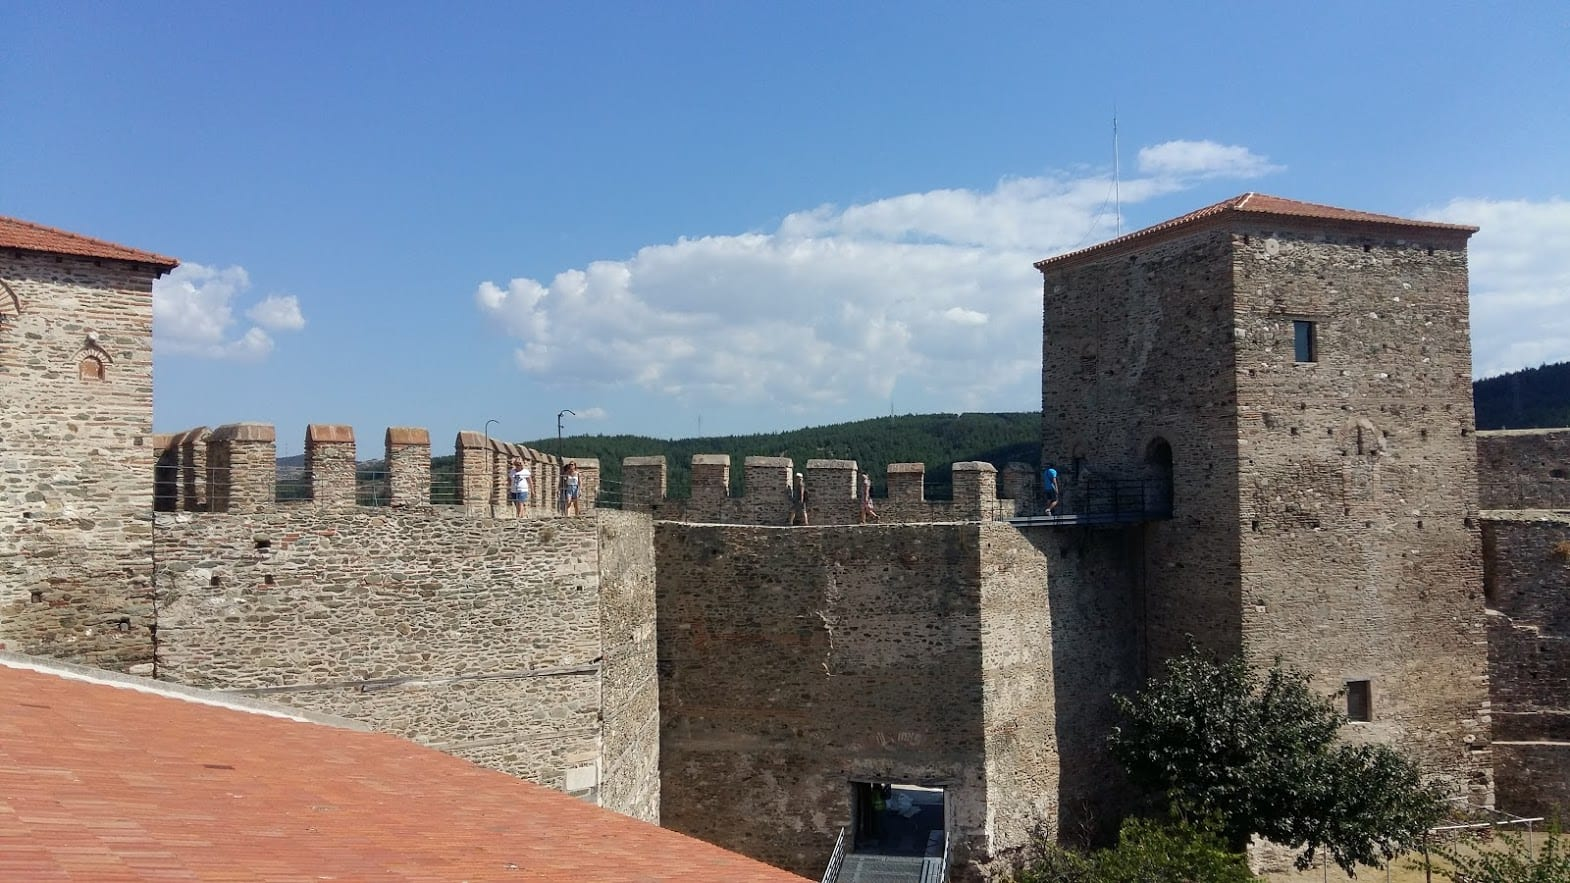 The city walls of Thessaloniki